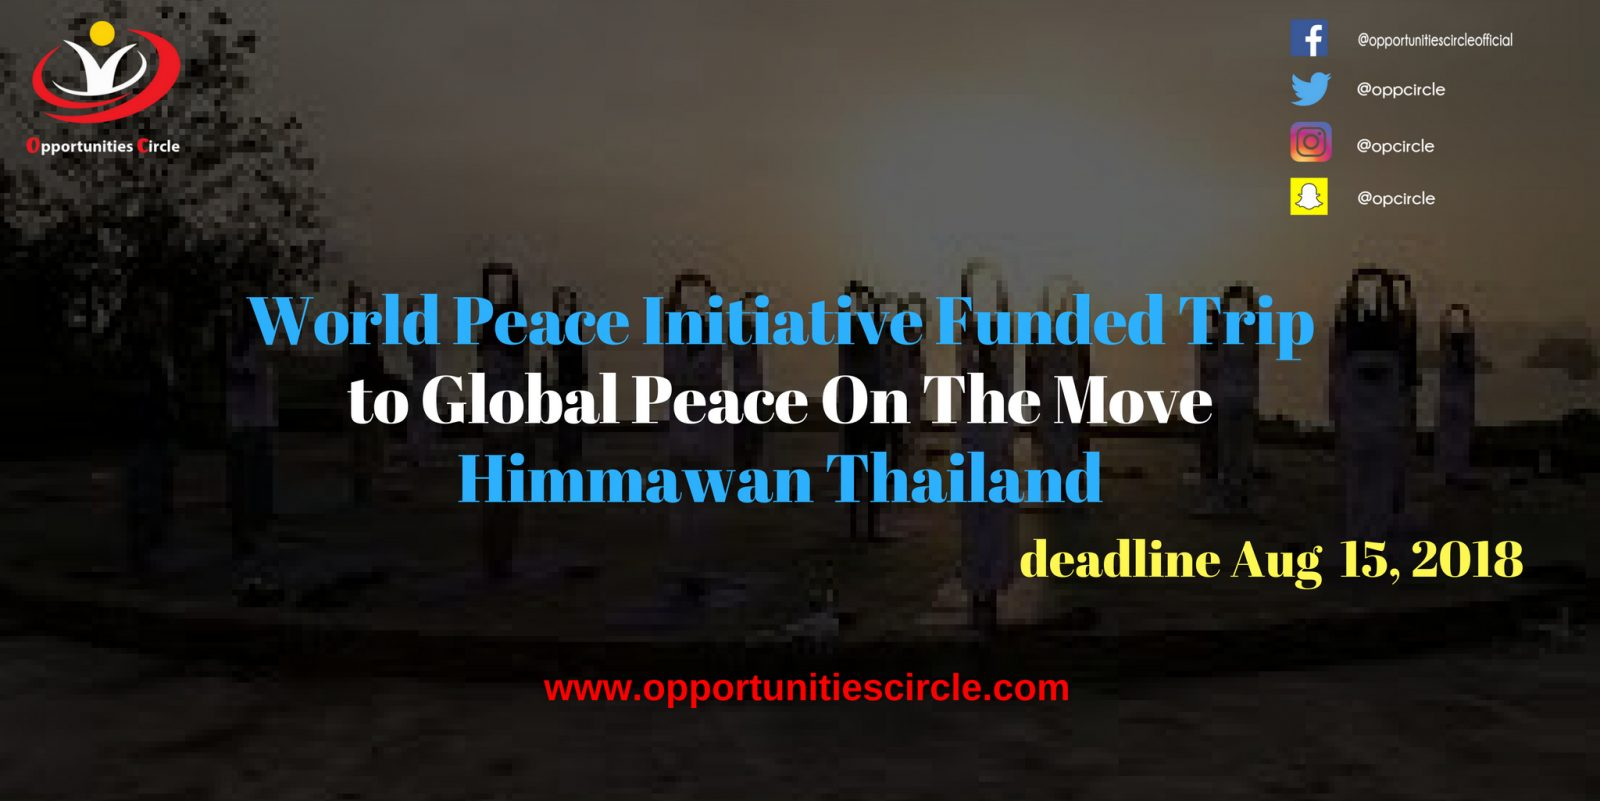 World Peace Initiative Funded Trip to Global Peace 1 - World Peace Initiative Funded Trip to Global Peace On The Move – Himmawan Thailand